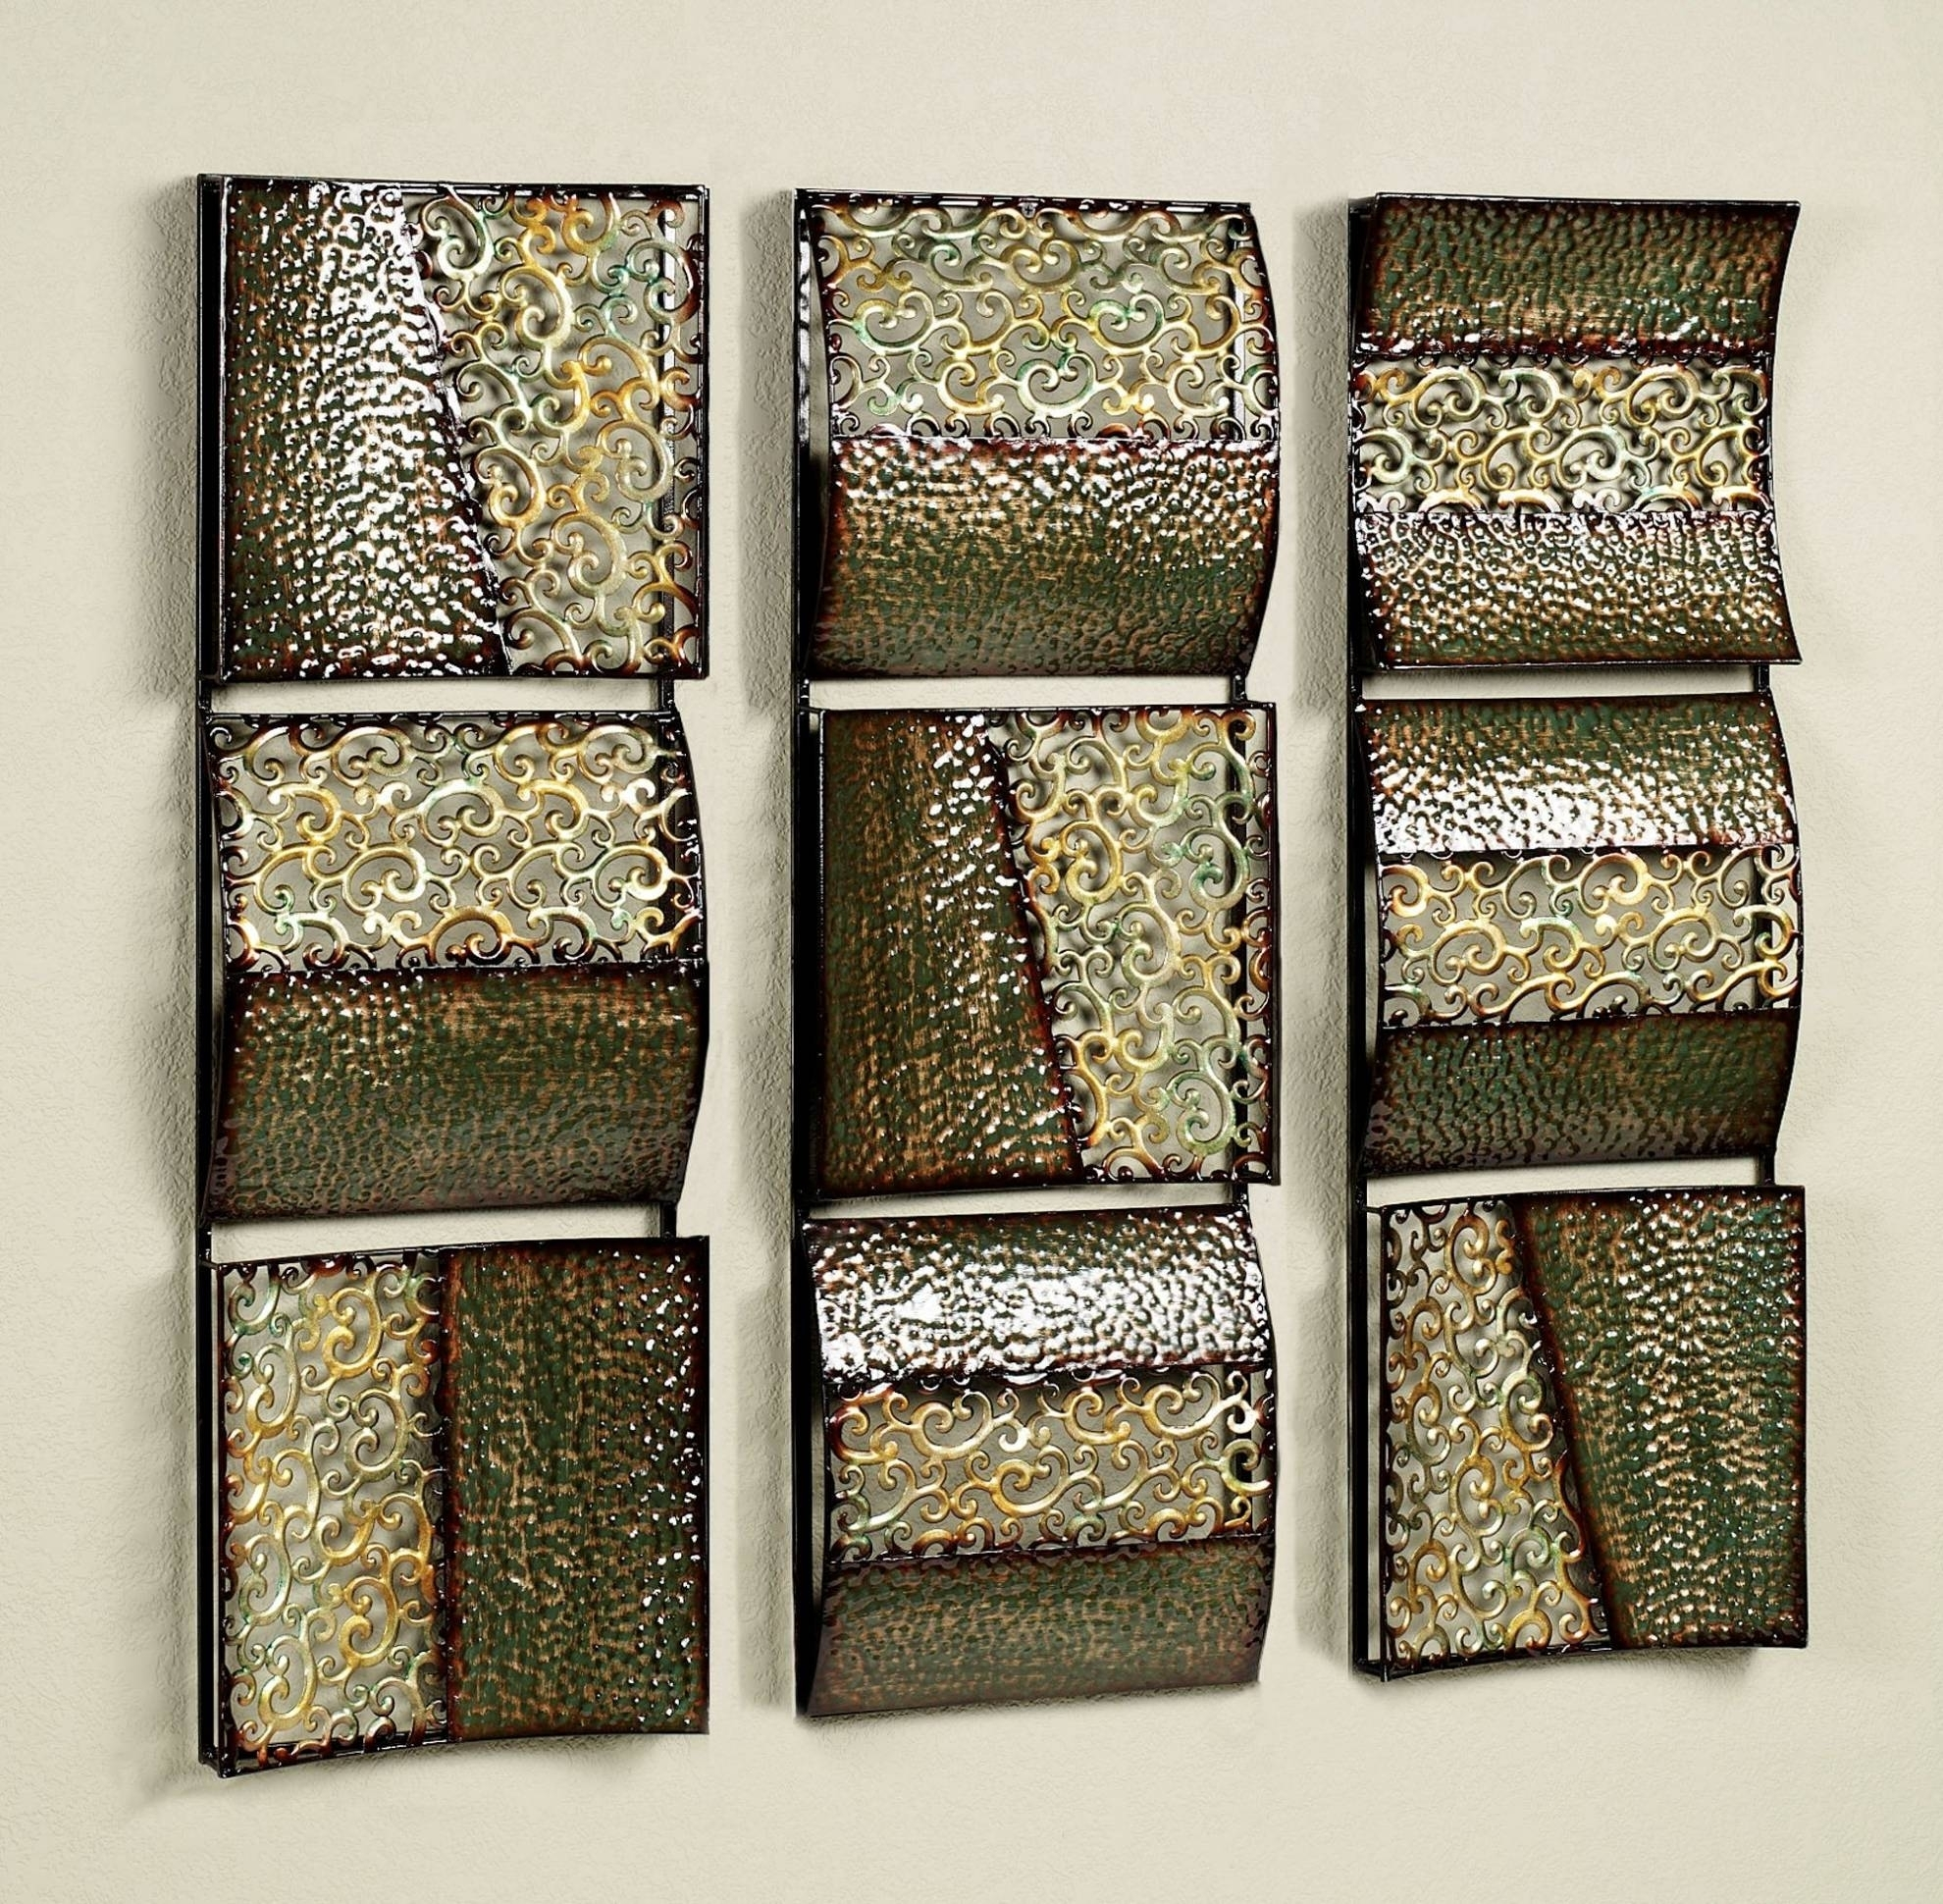 20 Inspirations Of Metal Wall Art Panels Throughout Most Recent Abstract Metal Wall Art Panels (Gallery 11 of 20)